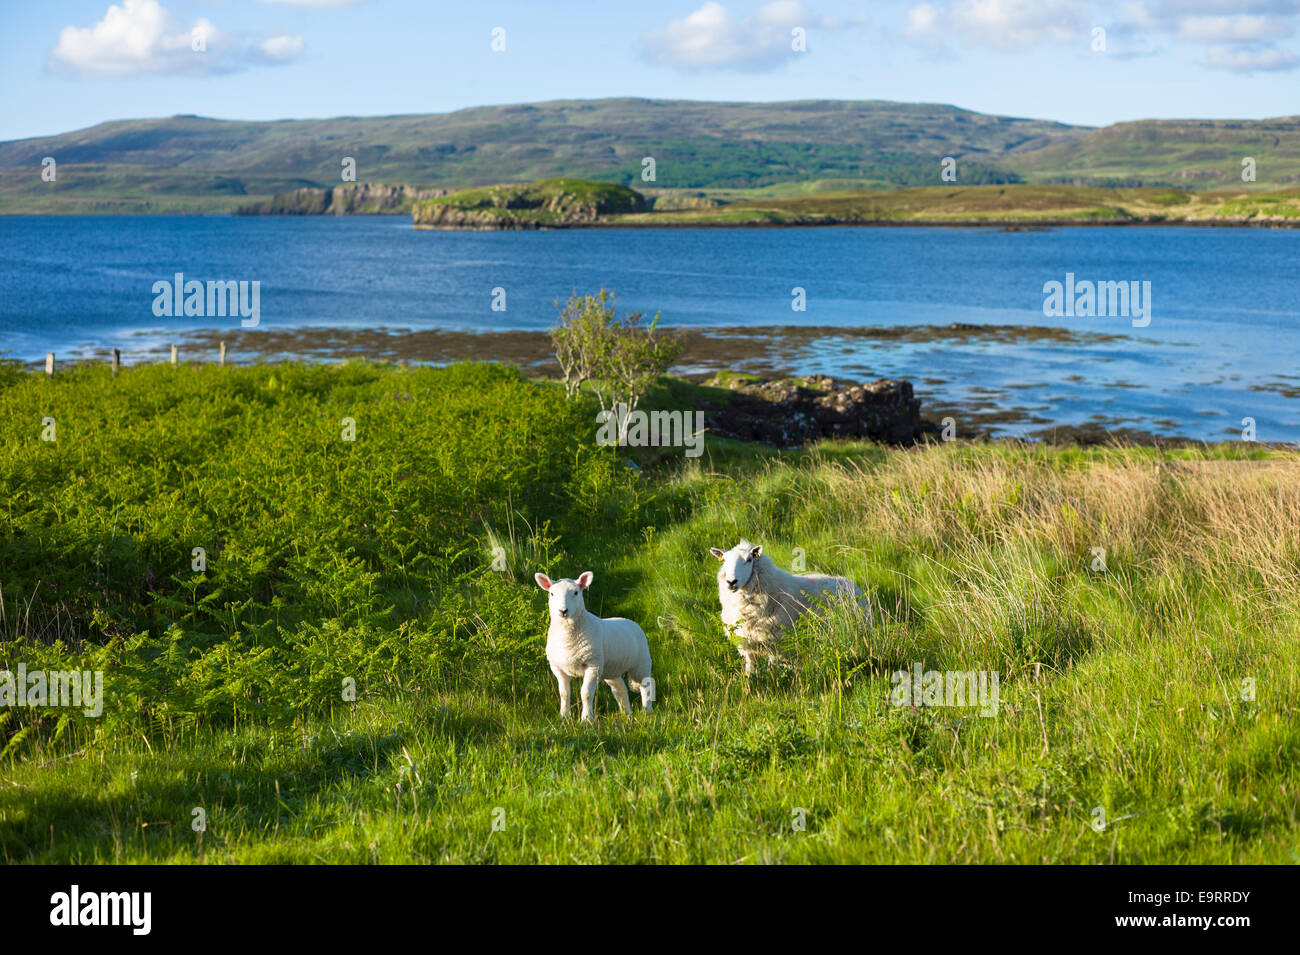 Ewe sheep with lamb, Ovis aries,  roaming freely on Isle of Skye in the Highlands and Islands of SCOTLAND - Stock Image